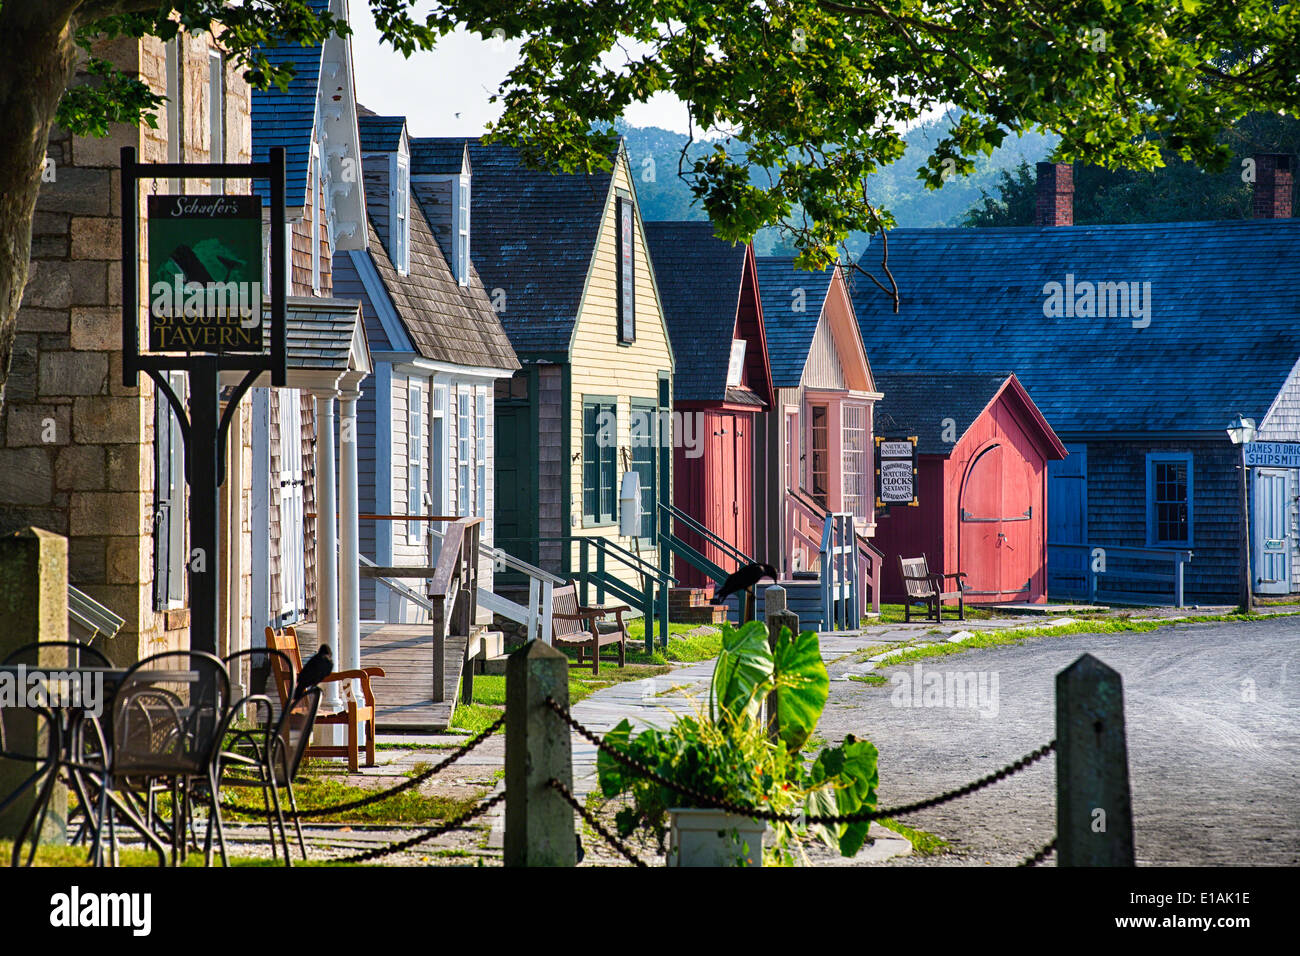 Colorful Historic Houses of a Seafaring Village, Mystic Seaport, Connecticut - Stock Image